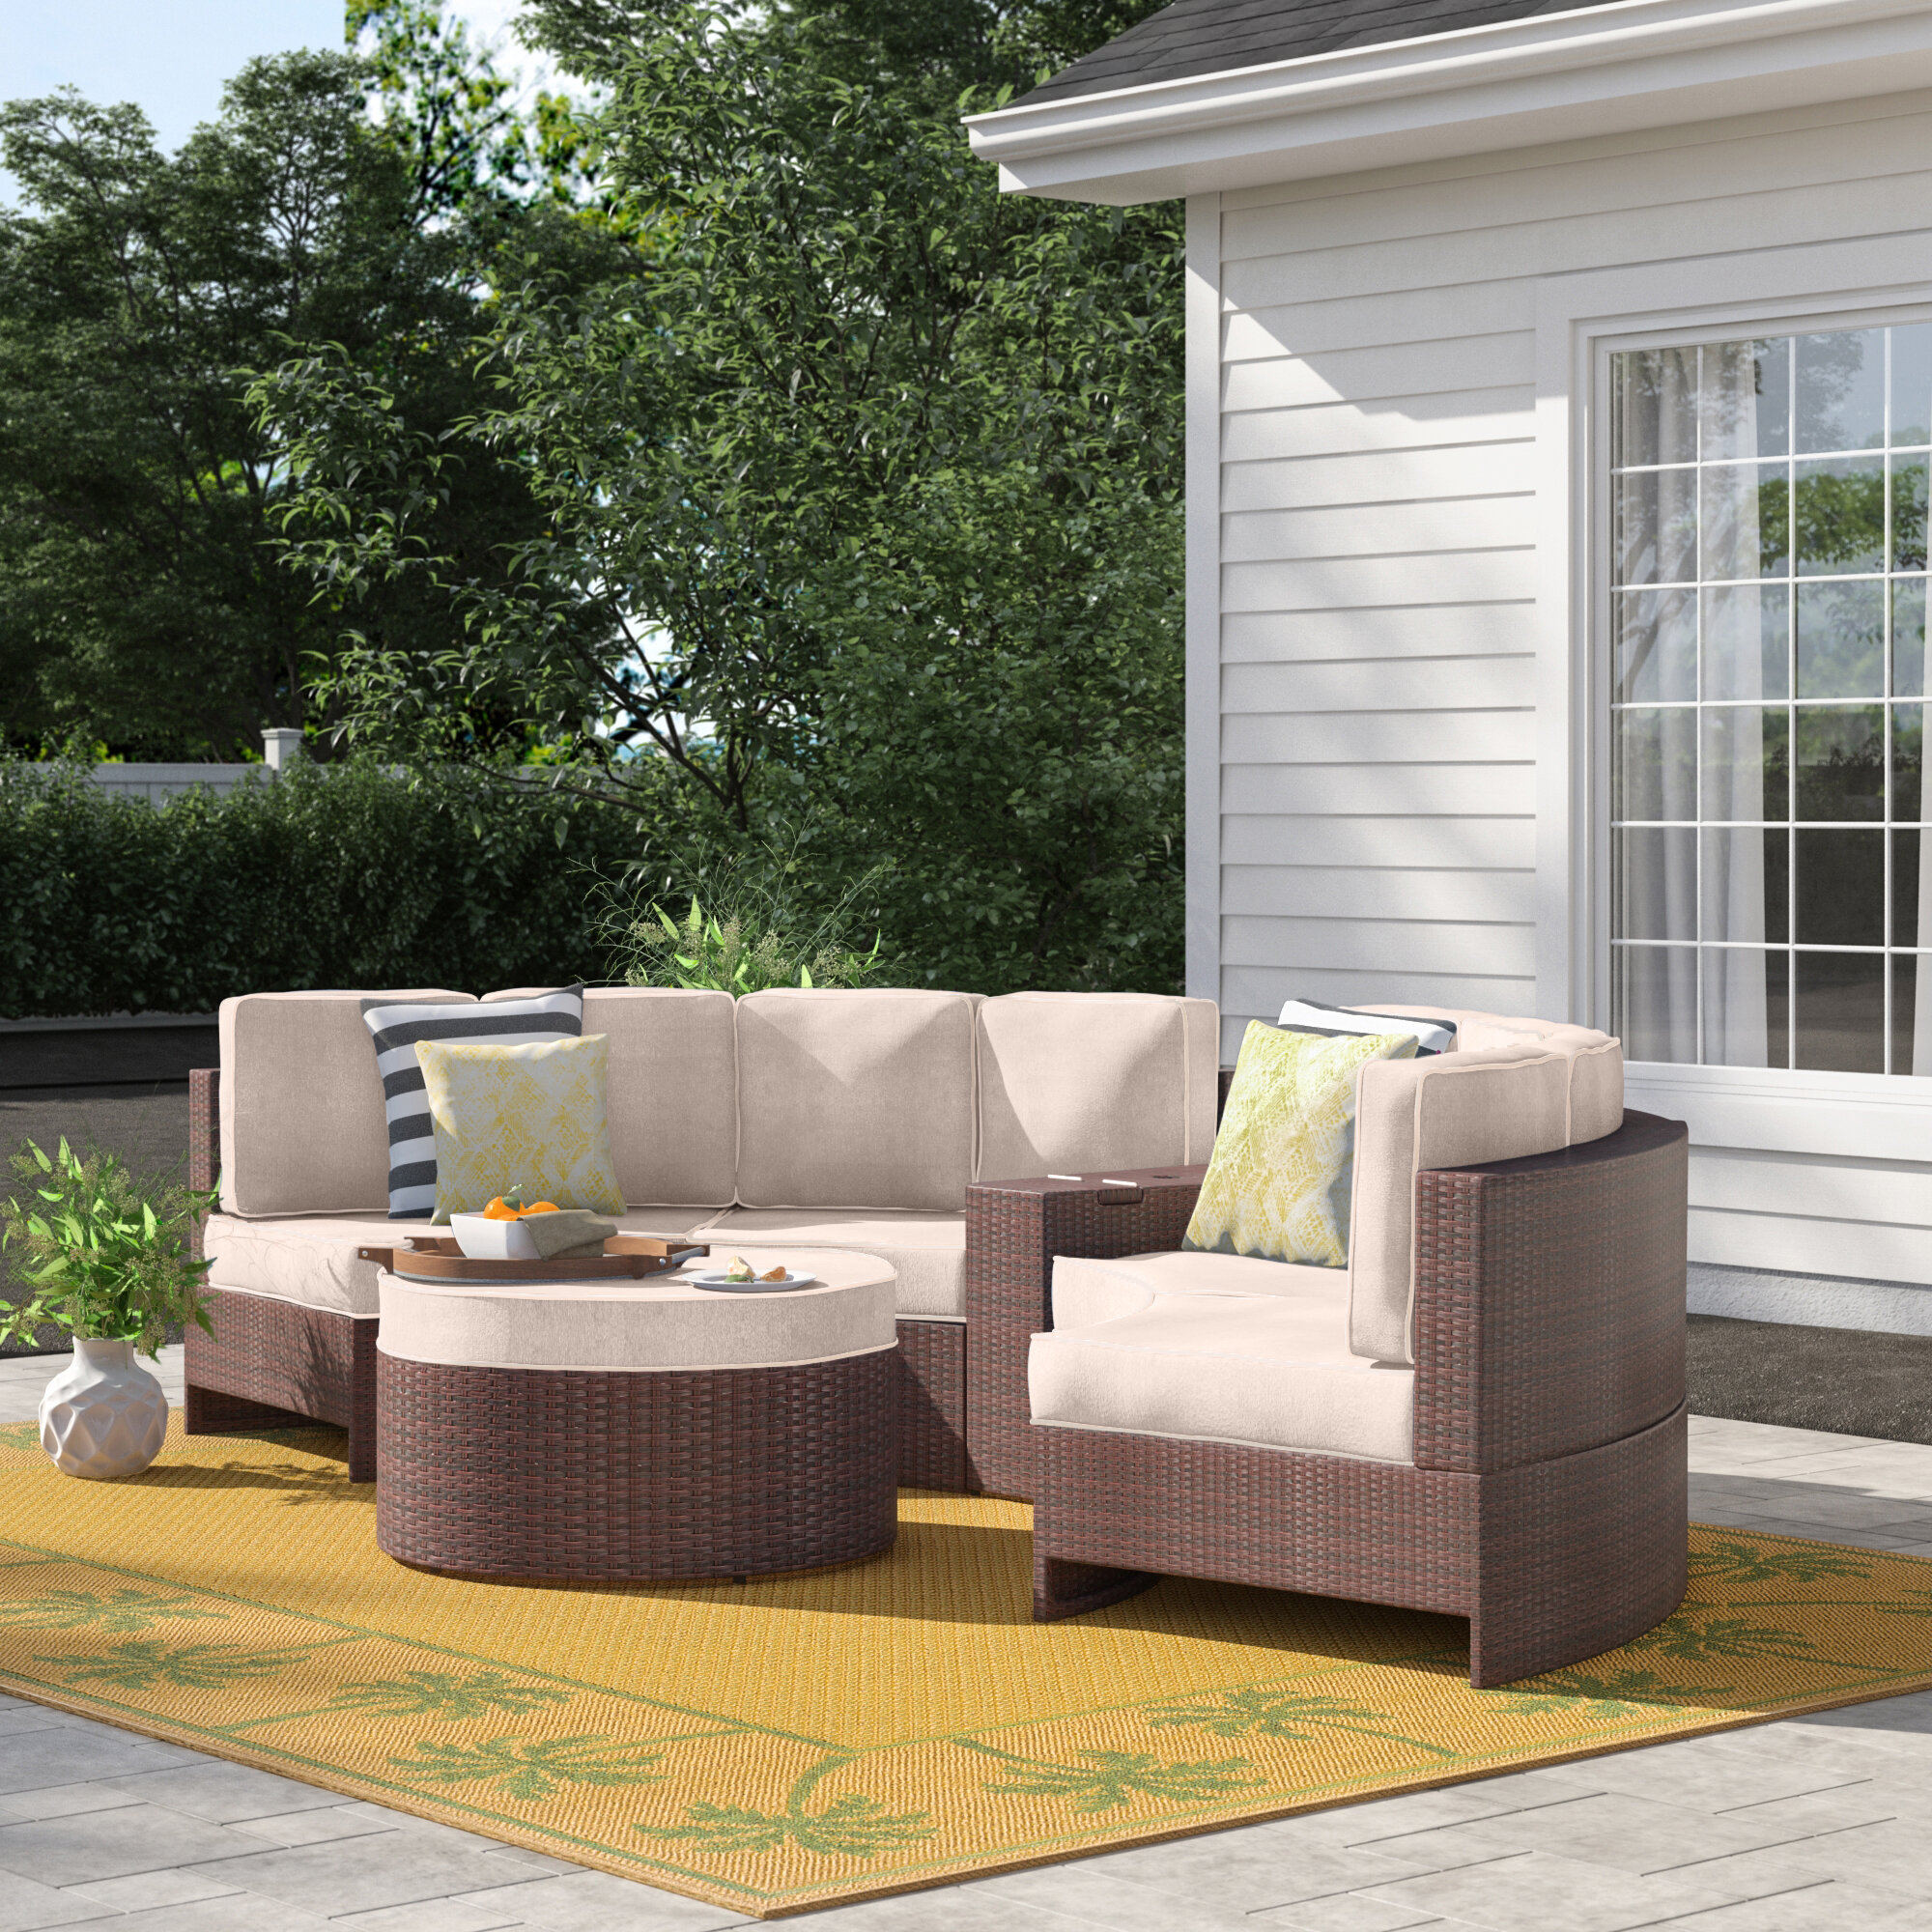 Sol 72 Outdoor Bermuda 6 Piece Rattan Sectional Seating Group With Cushions Reviews Wayfair